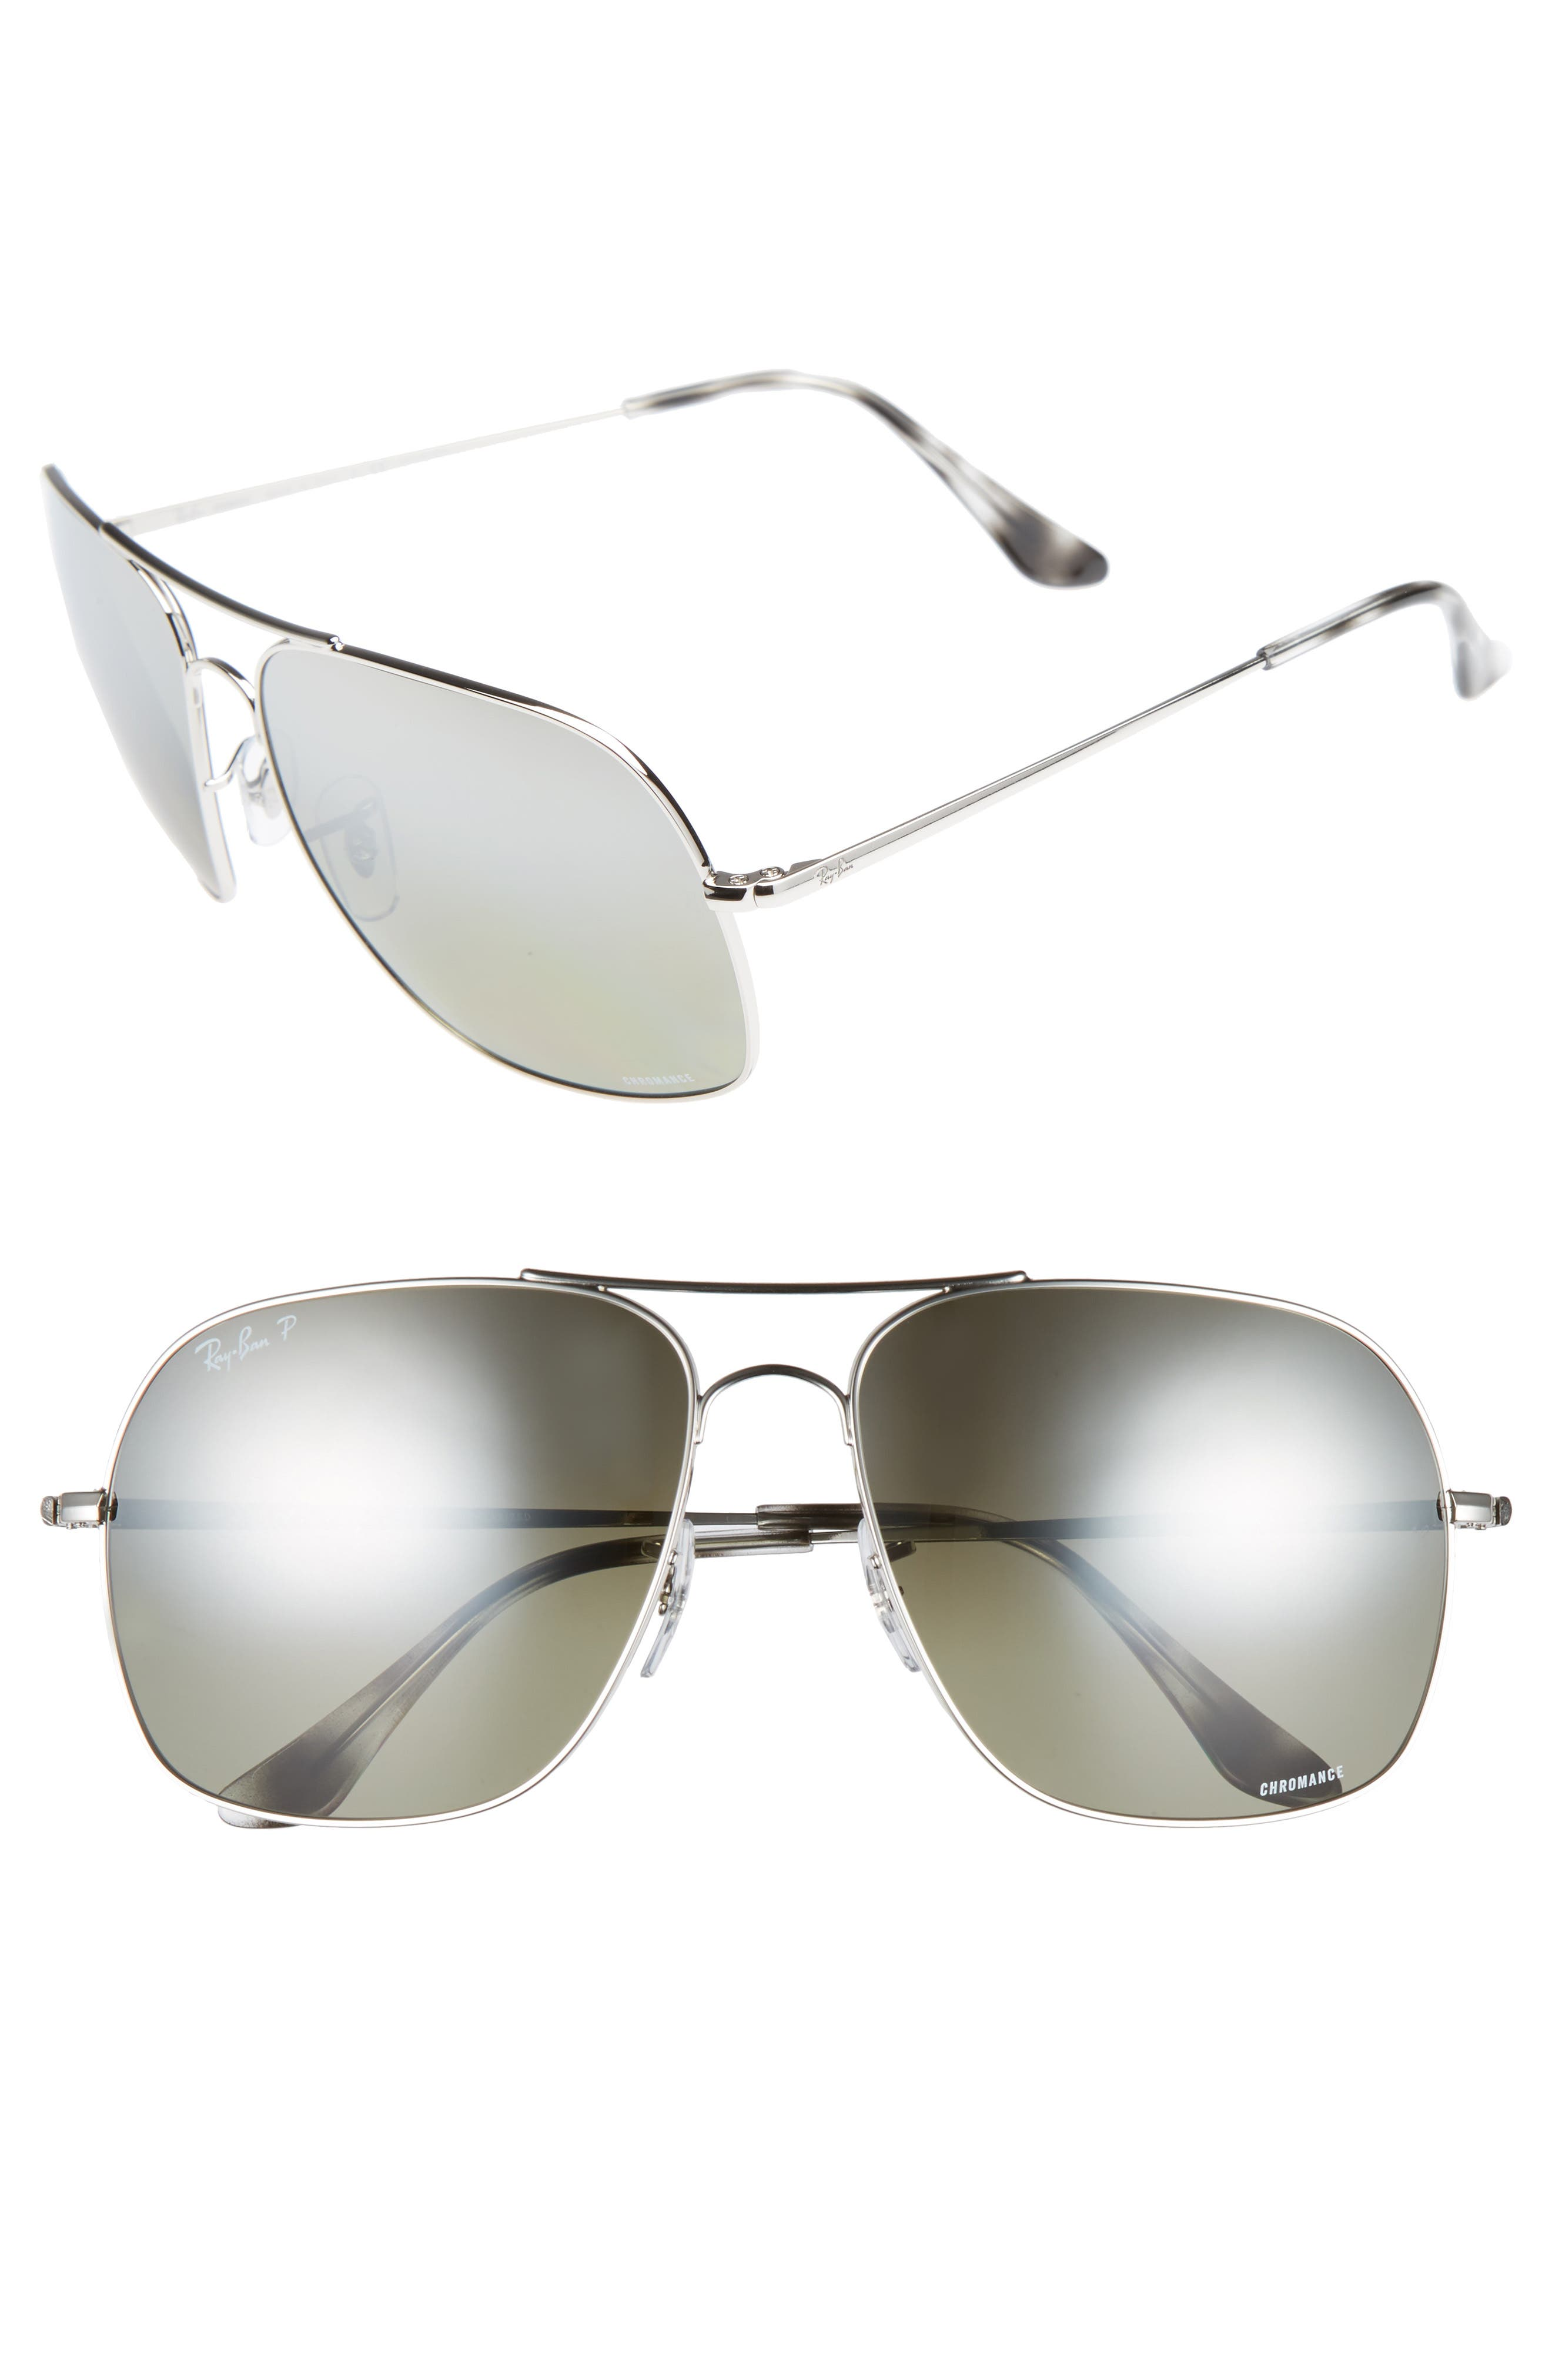 61mm Mirrored Lens Polarized Aviator Sunglasses,                             Main thumbnail 1, color,                             040